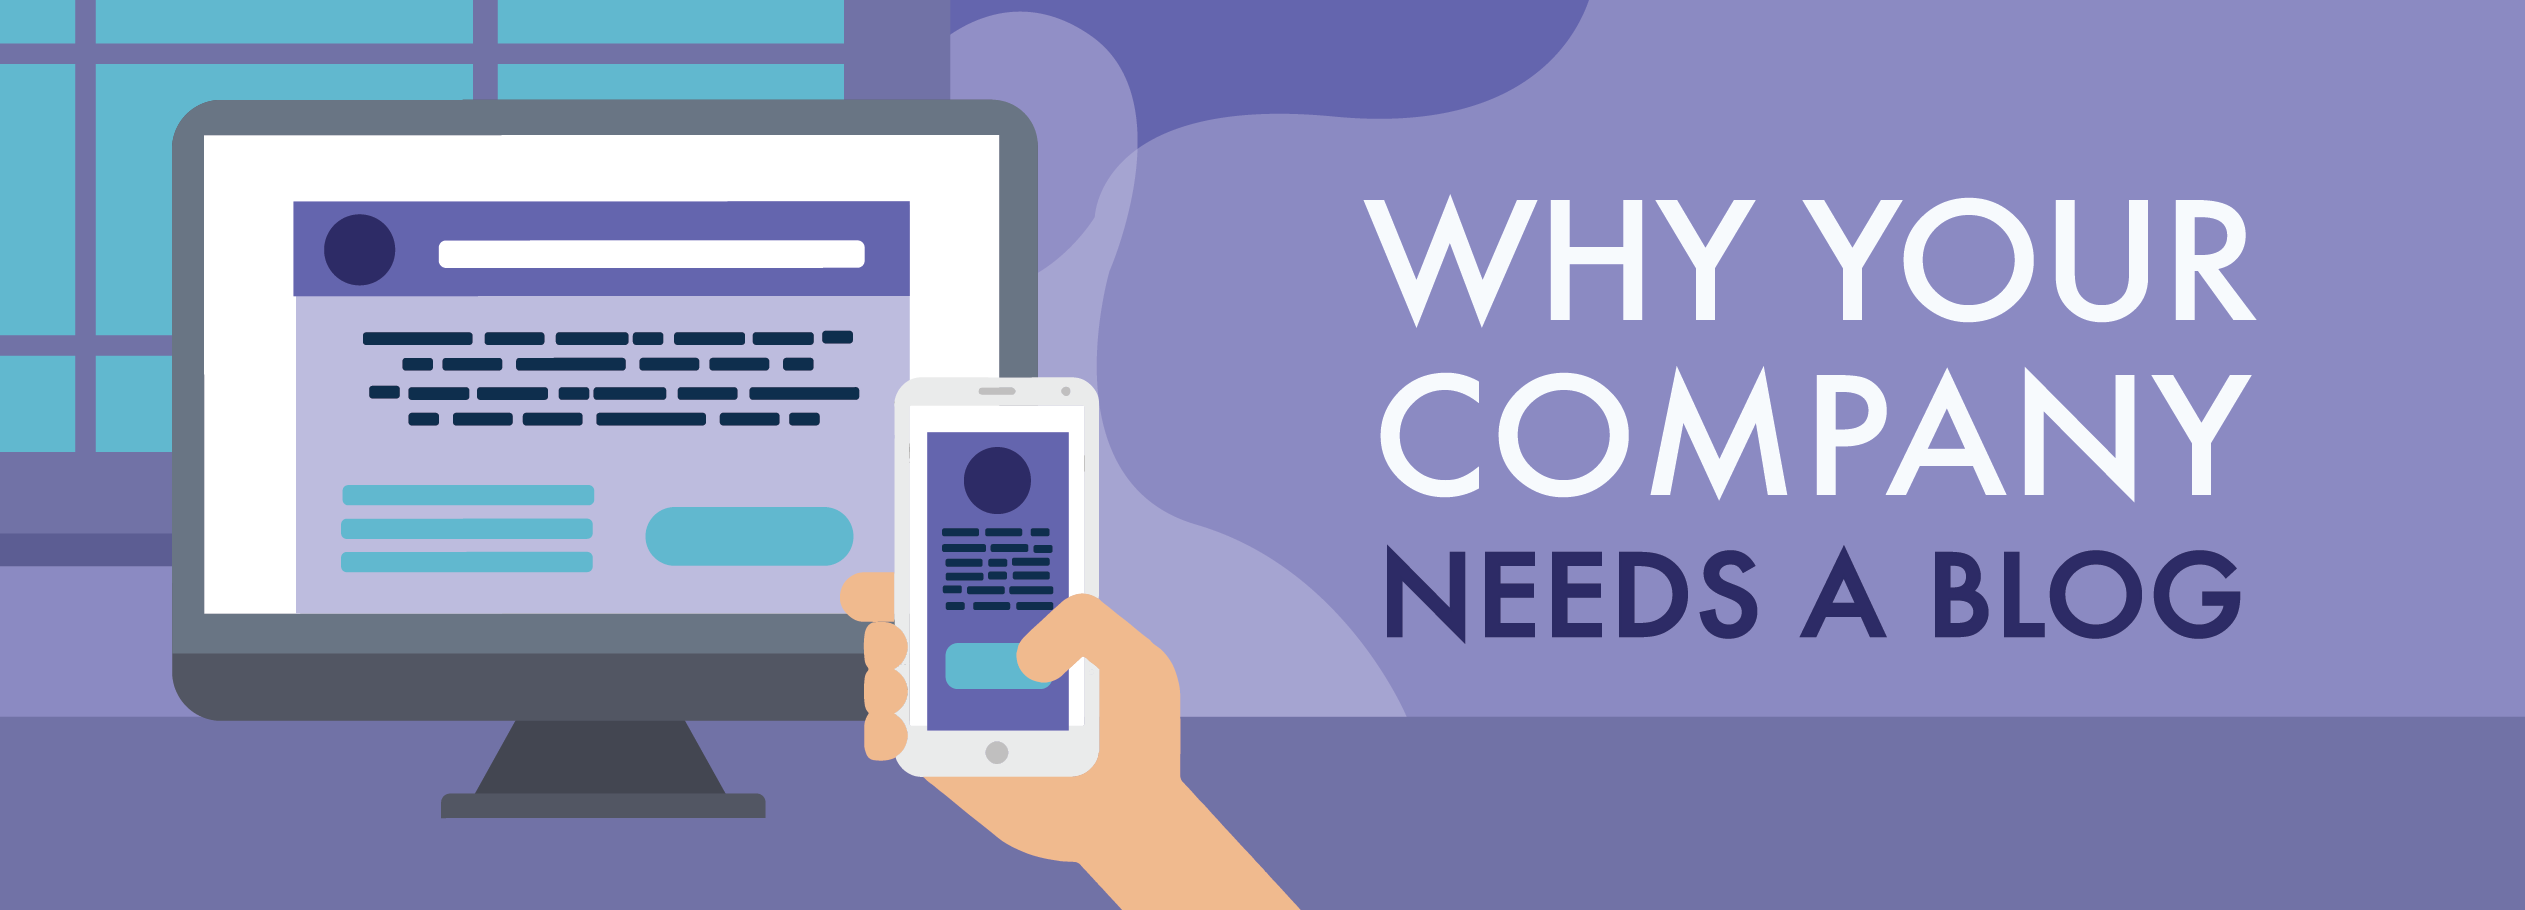 Why Your Company Needs a Blog